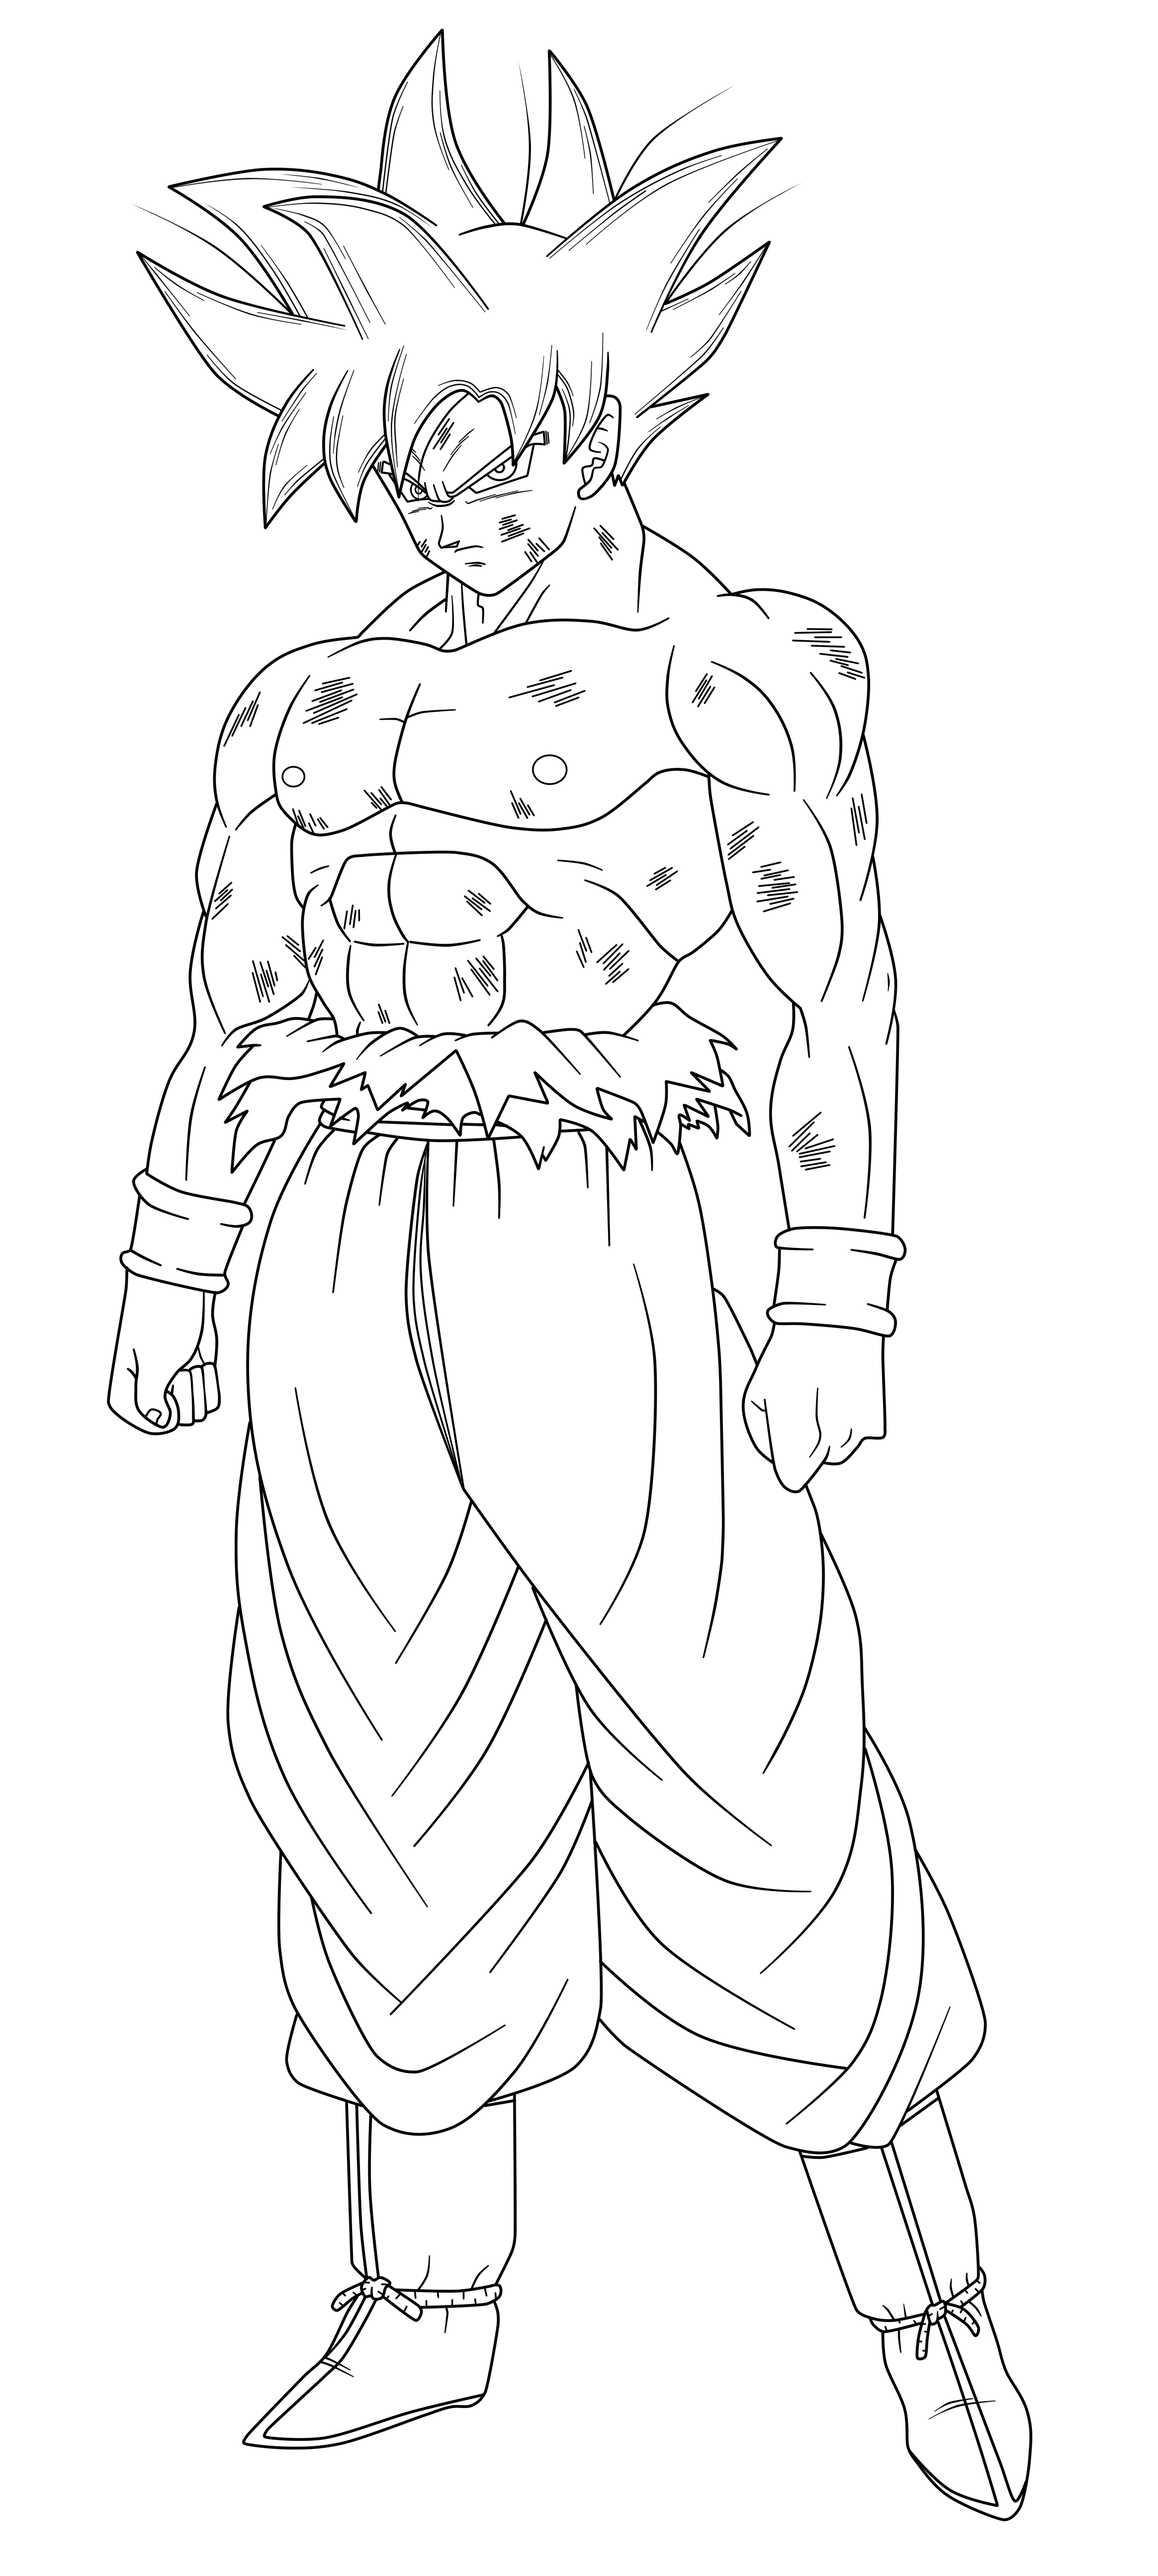 Goku Ultra Instinct - Free Coloring Pages